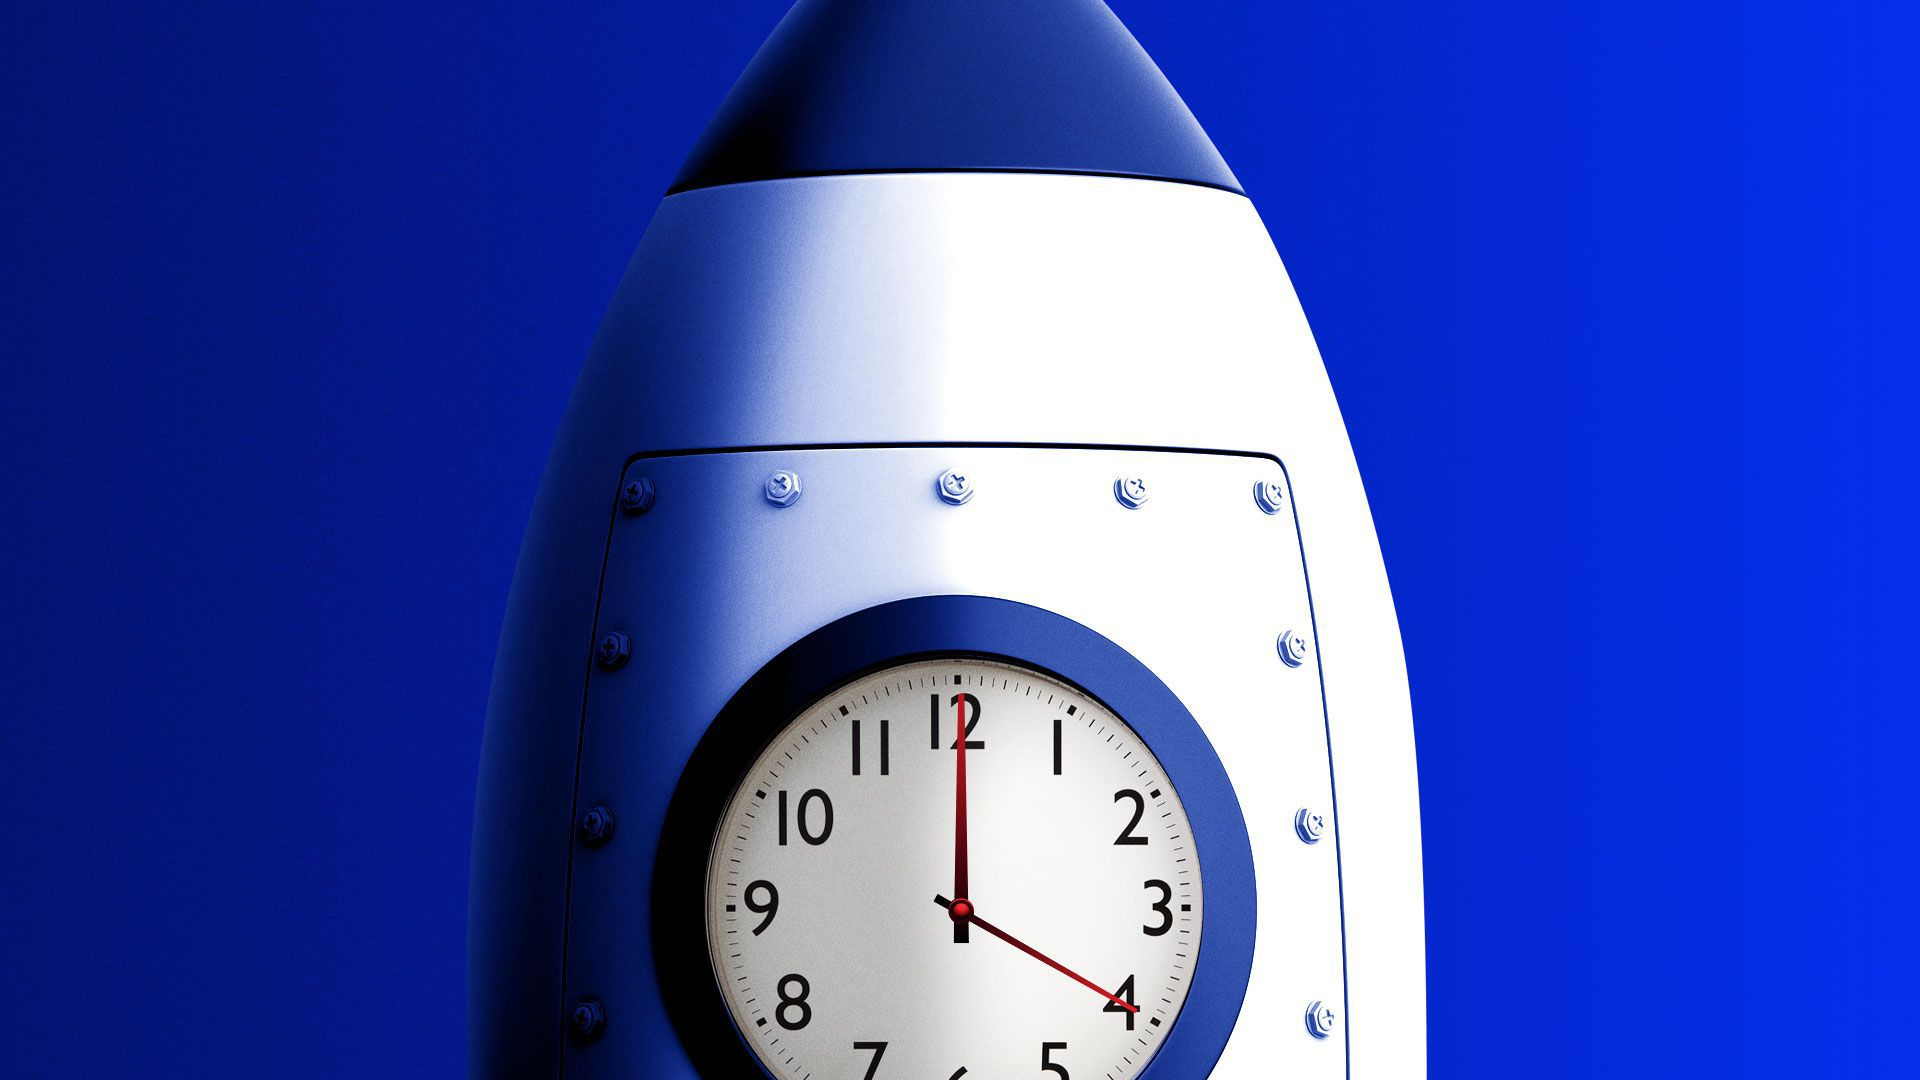 Illustration of rocket with a clock as its window face